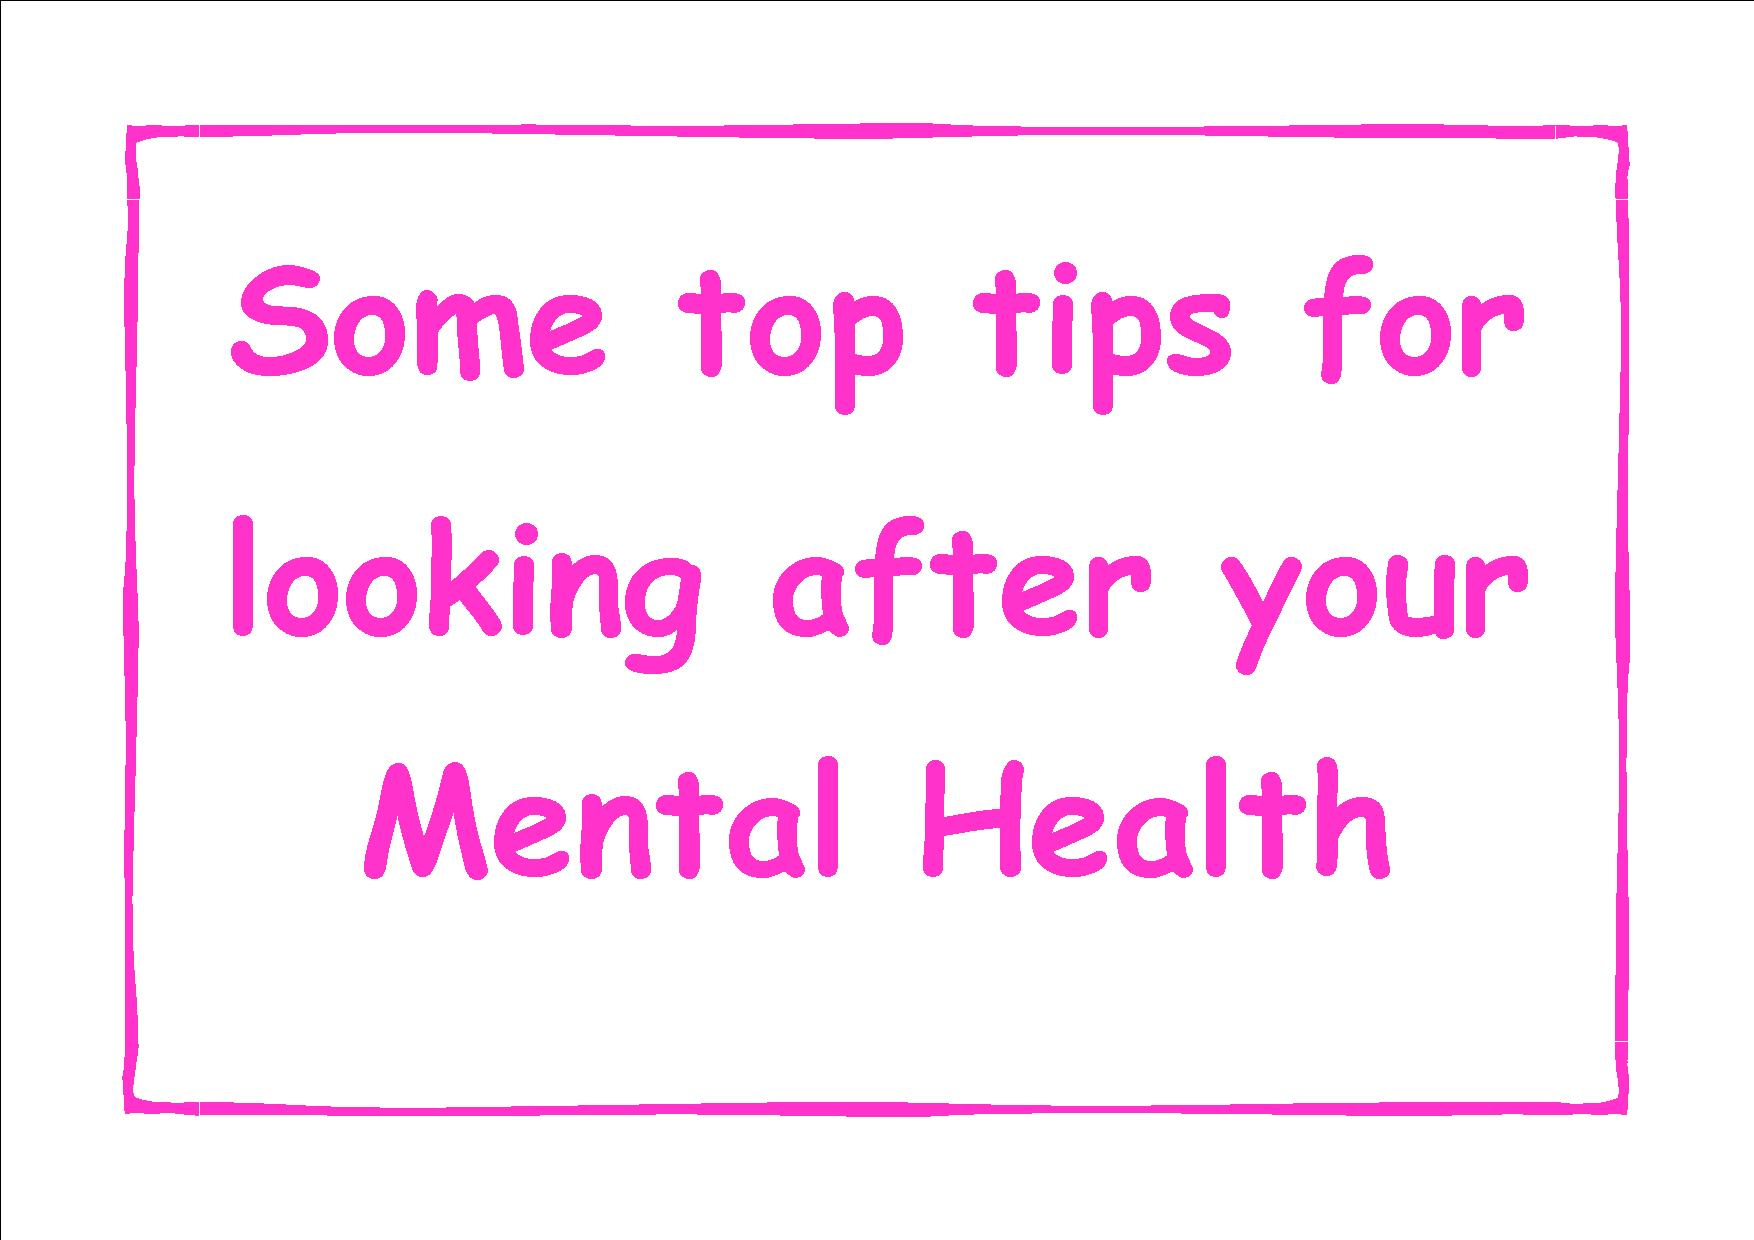 Mental Health Week Slides2.jpg